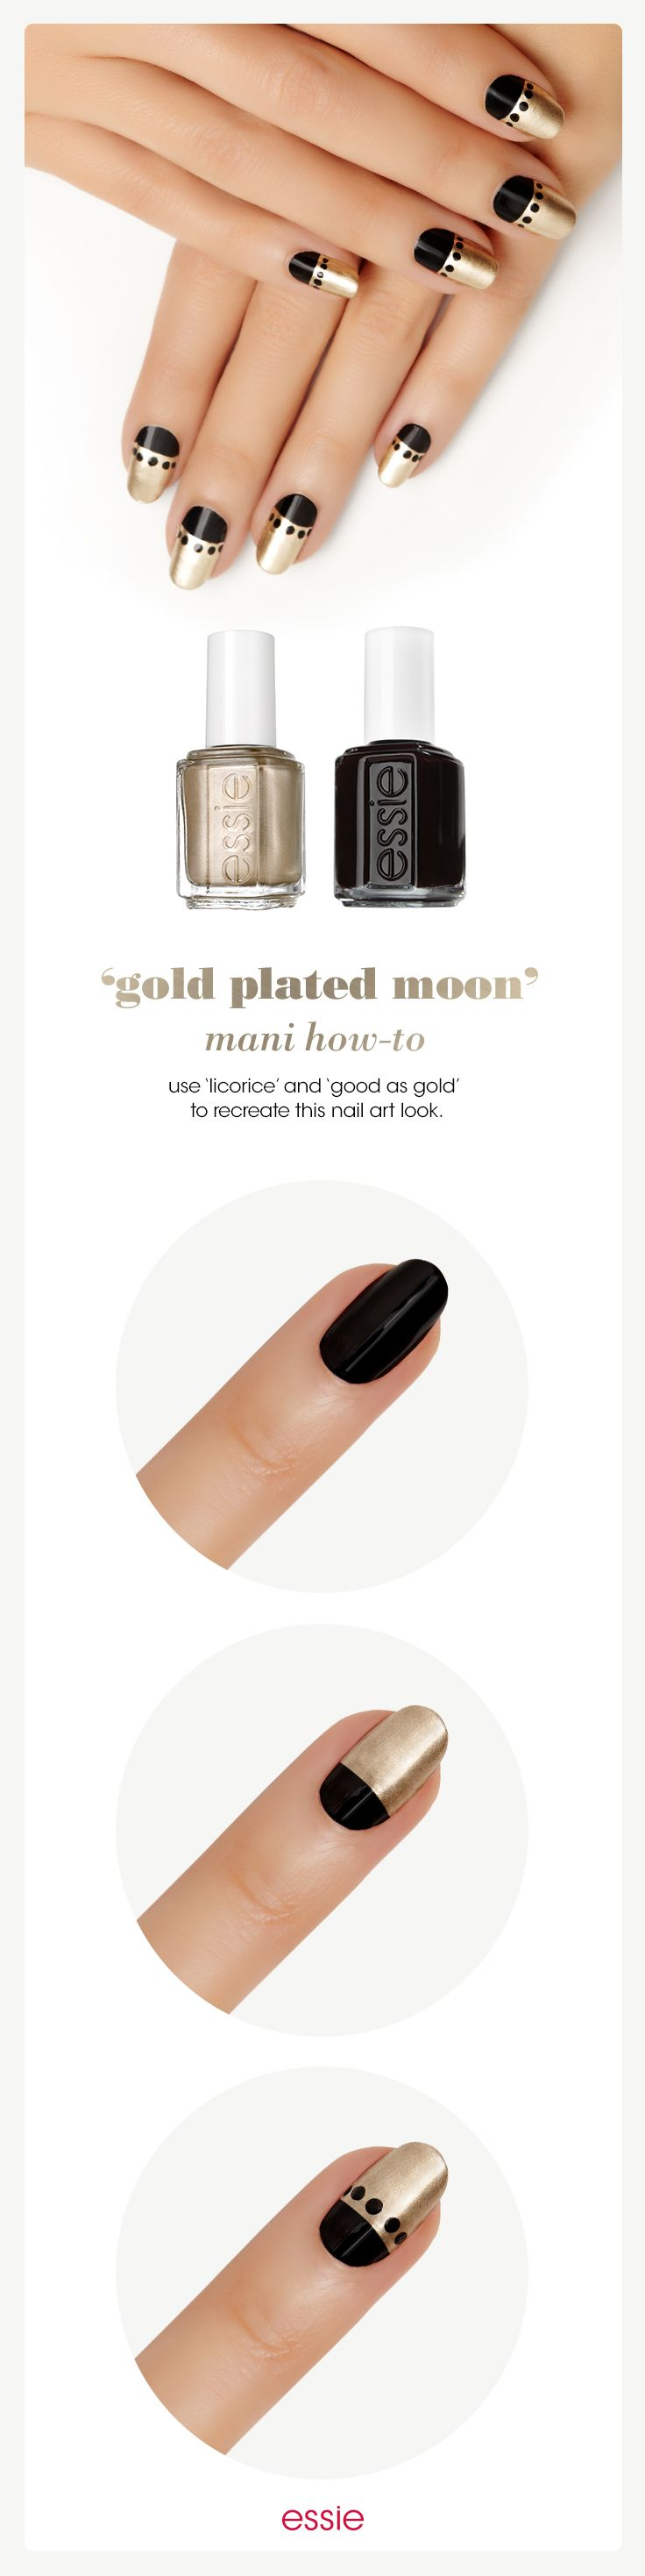 Shine a little brighter with this elegant nail art essie shows us